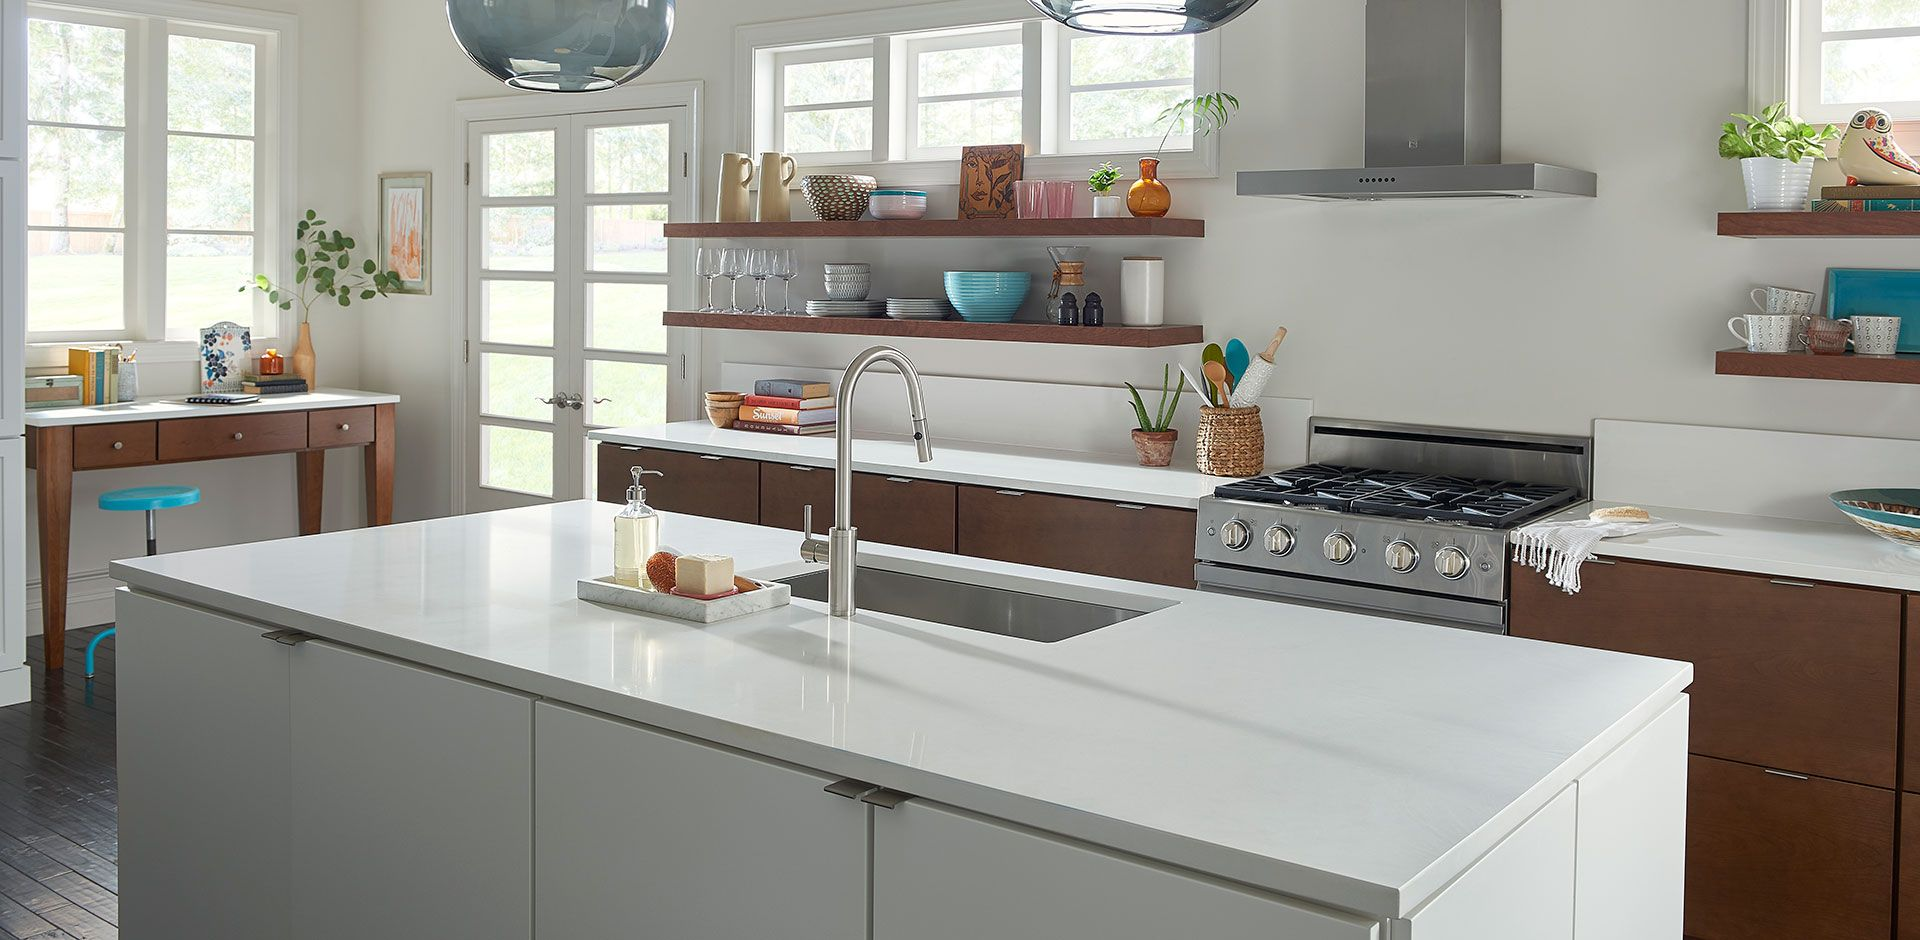 Arctic White Quartz Is A Solid Bright White Slab With No Pattern